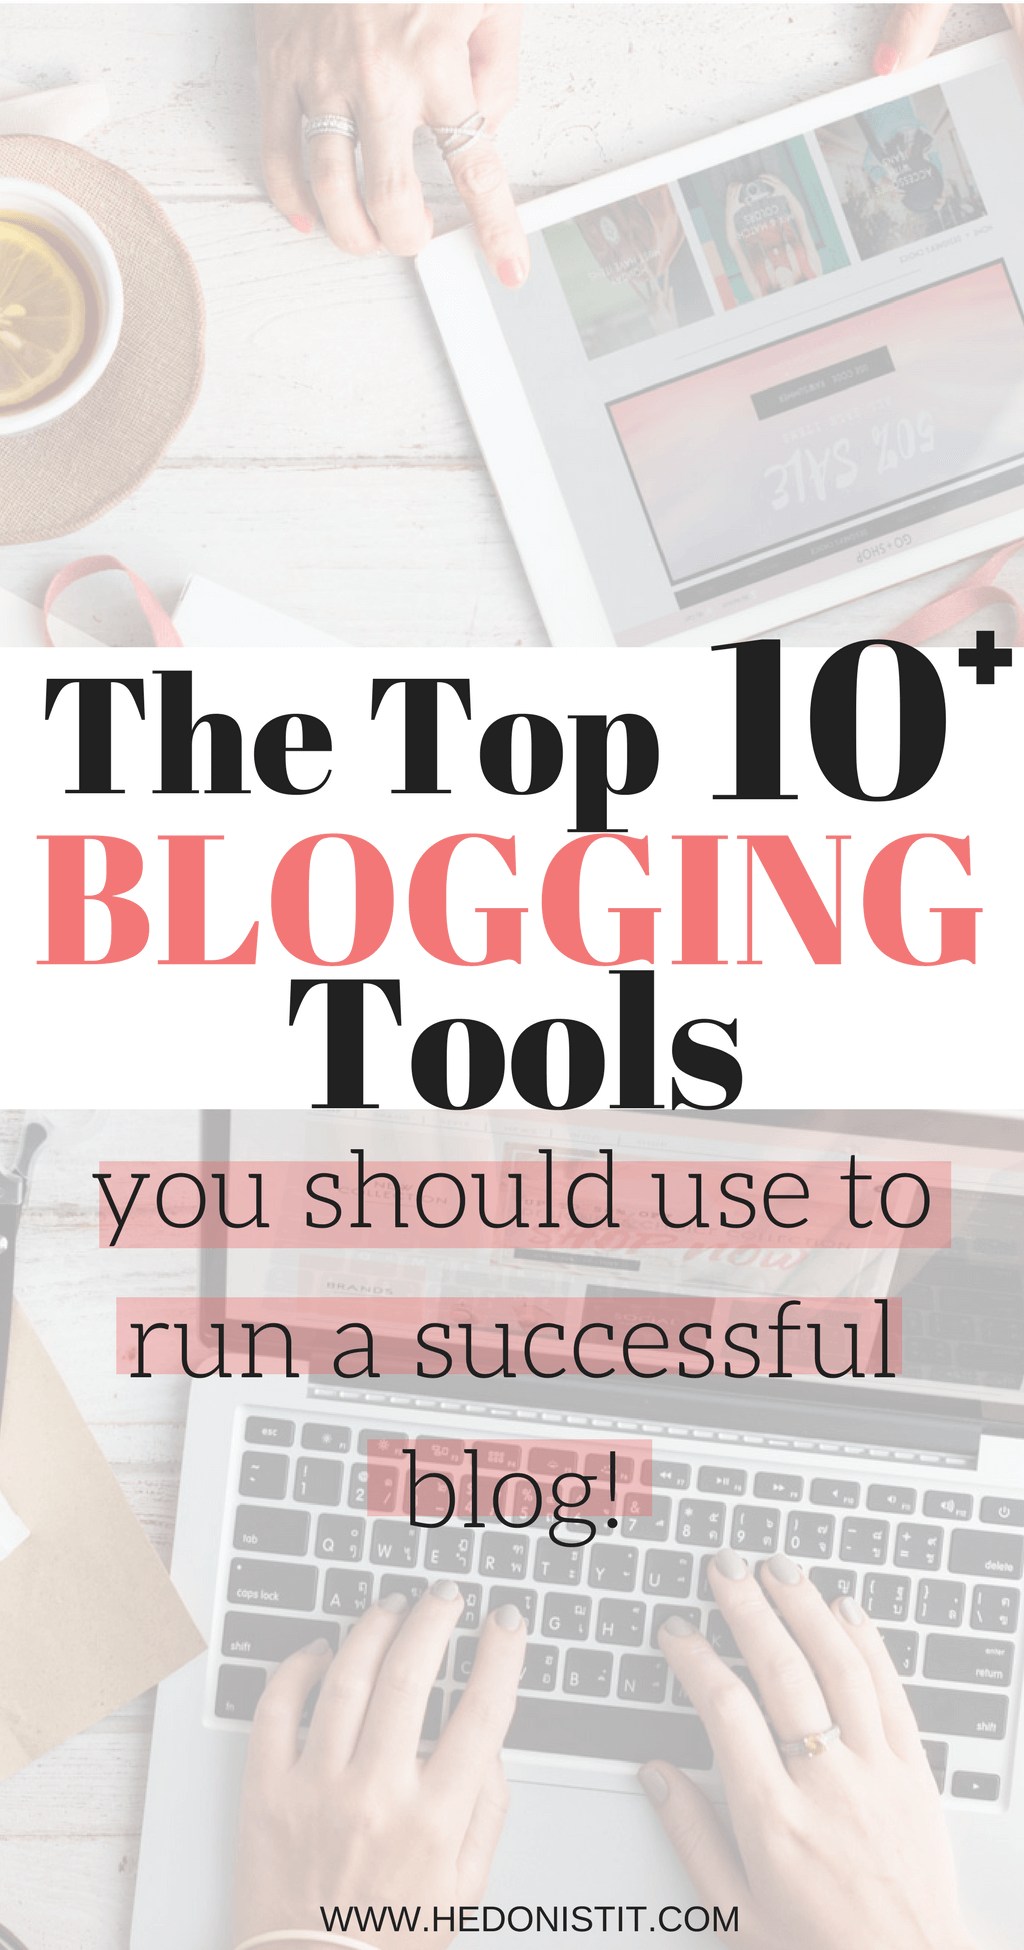 Here are my top 10 blogging essentials I use to run a successful blog. From hosting to marketing - You NEED to check this list out!